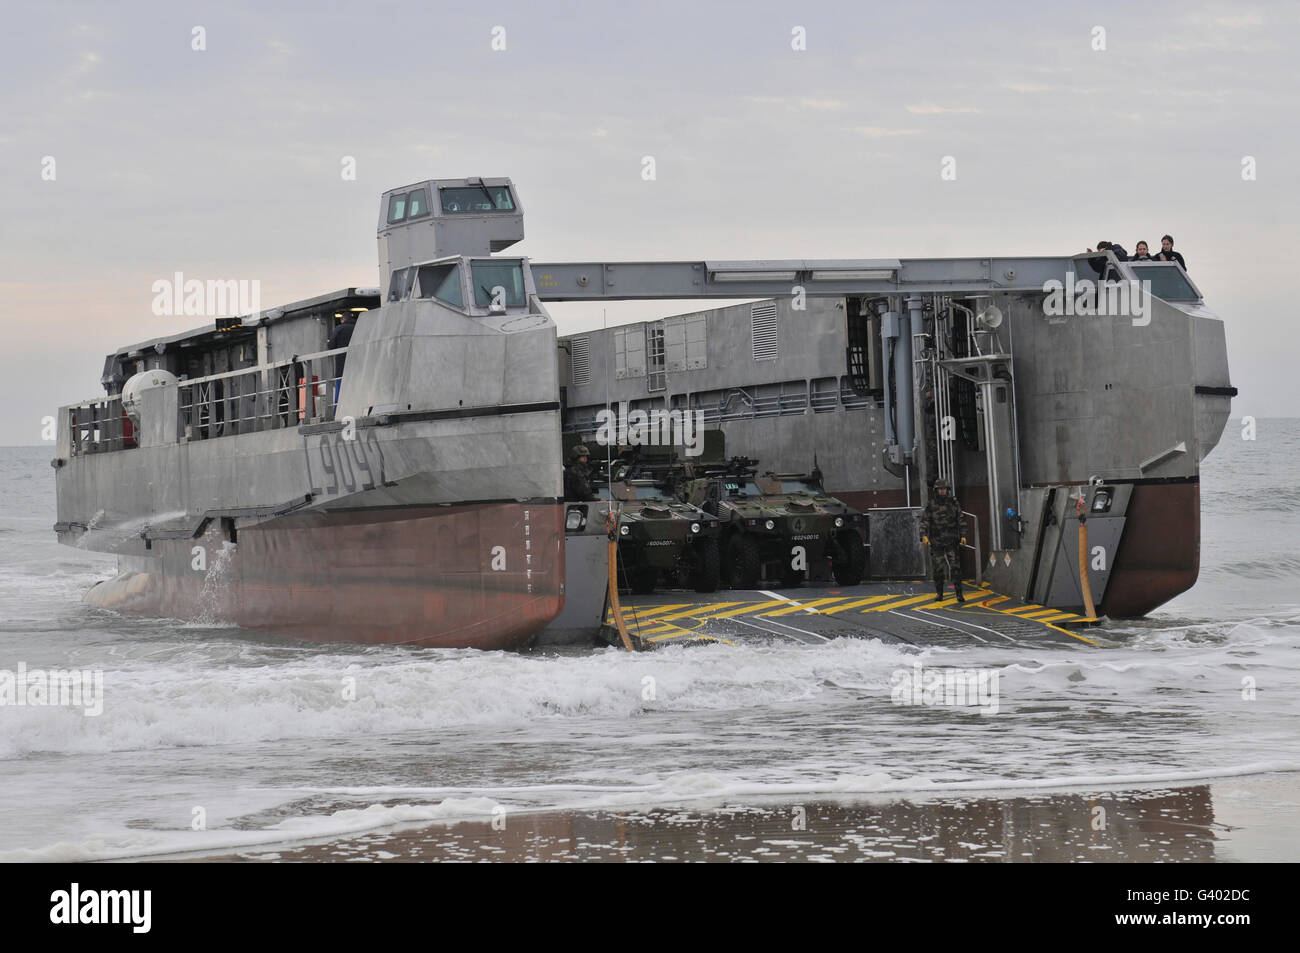 A French landing craft comes ashore during Exercise Bold Alligator. Stock Photo